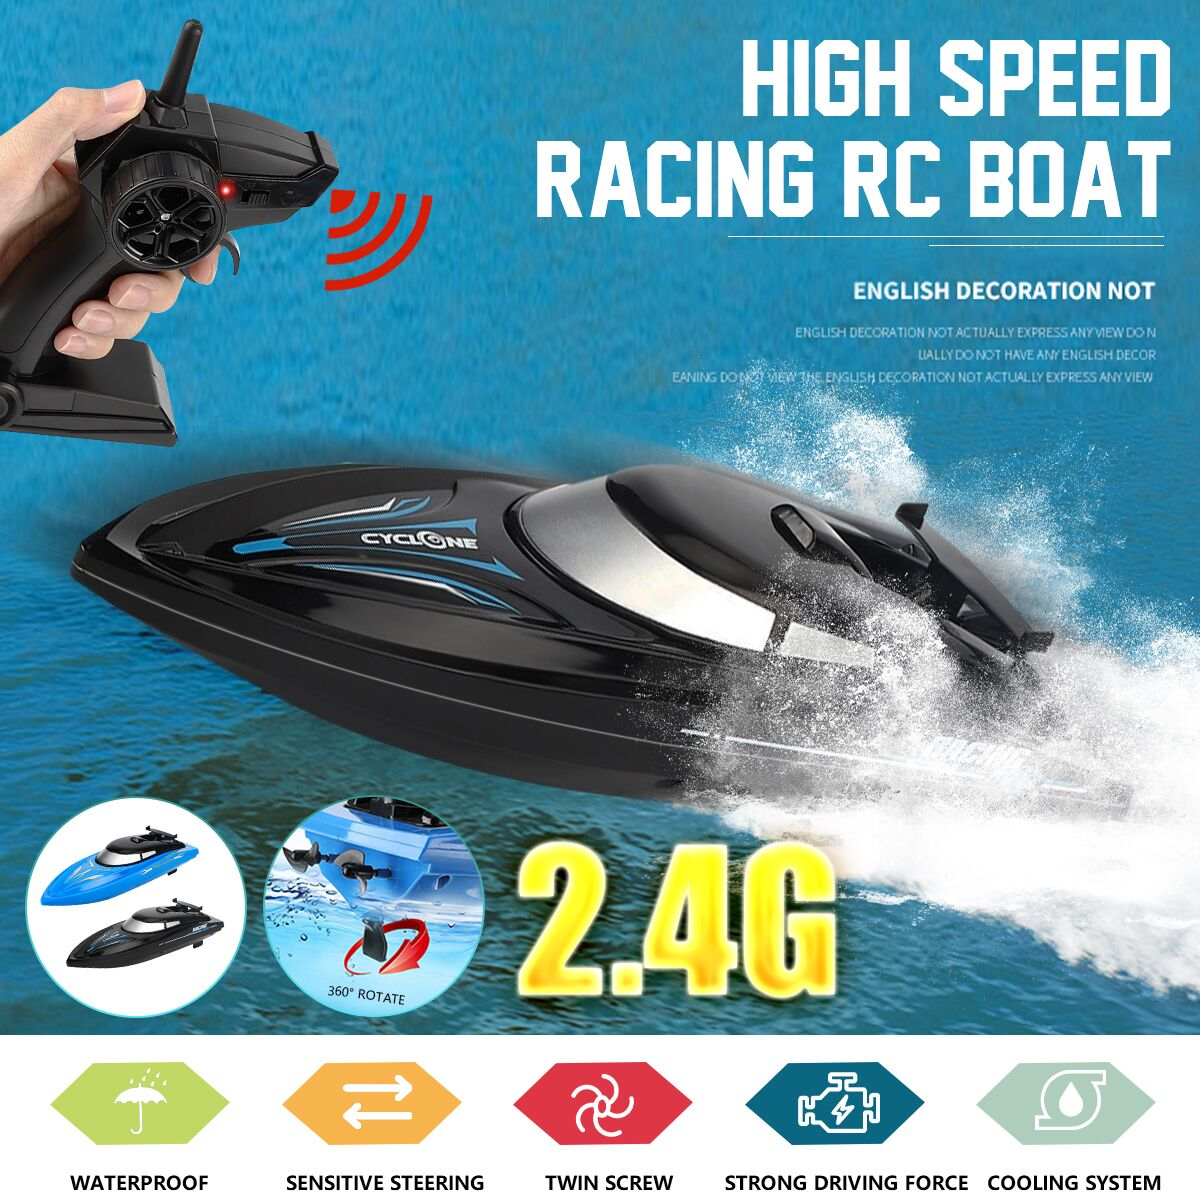 JJRC 2.4G 48KM/H Electric Racing RC Boat Ship Remote Control High Speed Kids Child Toys Gift Water S